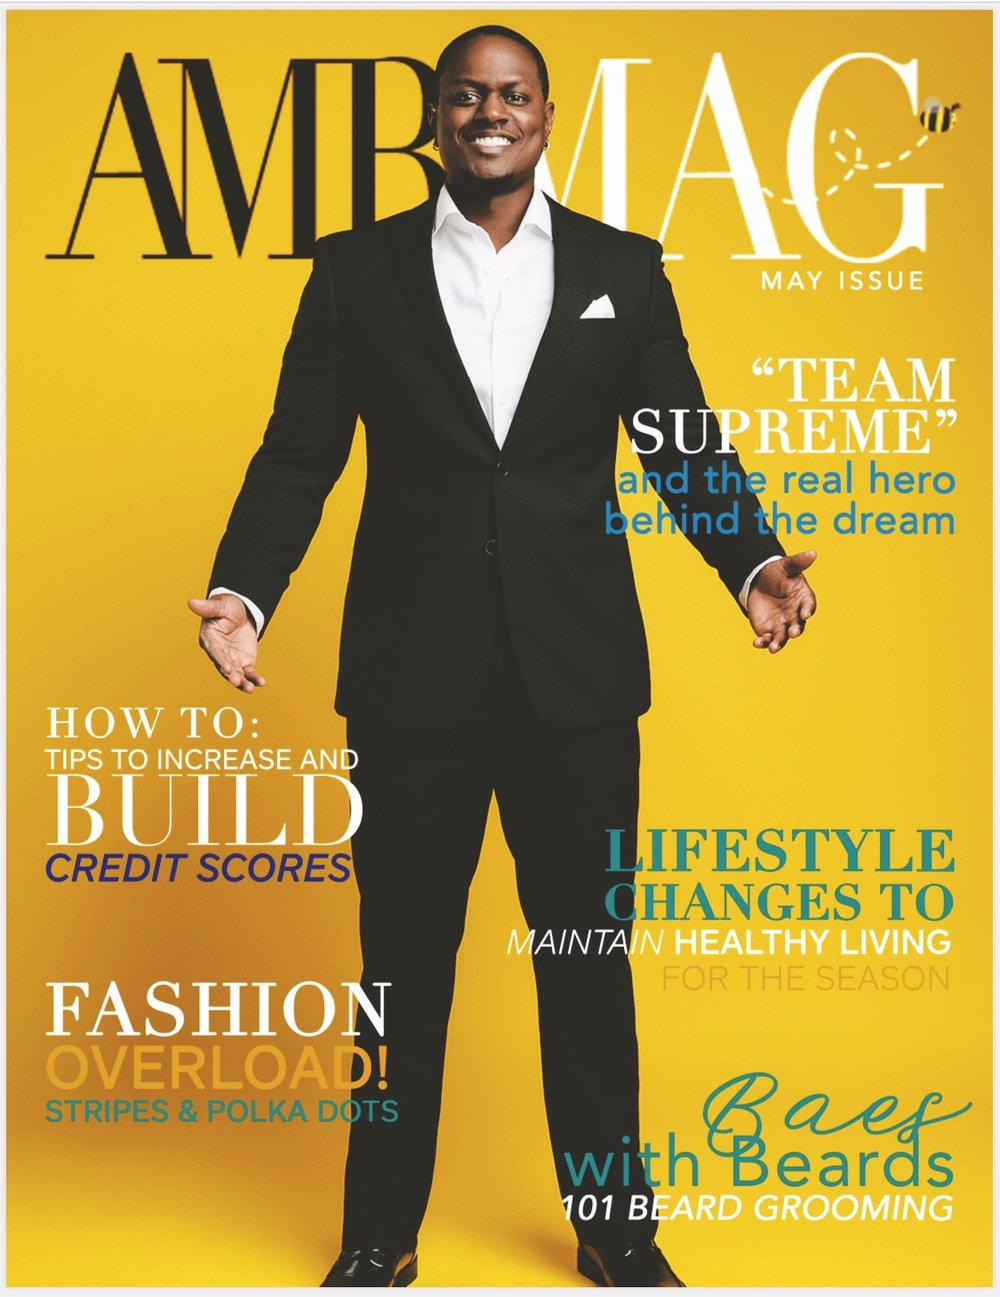 AMBMAG 2018 - https://issuu.com/amb_mag/docs/amb-mag-may-issue